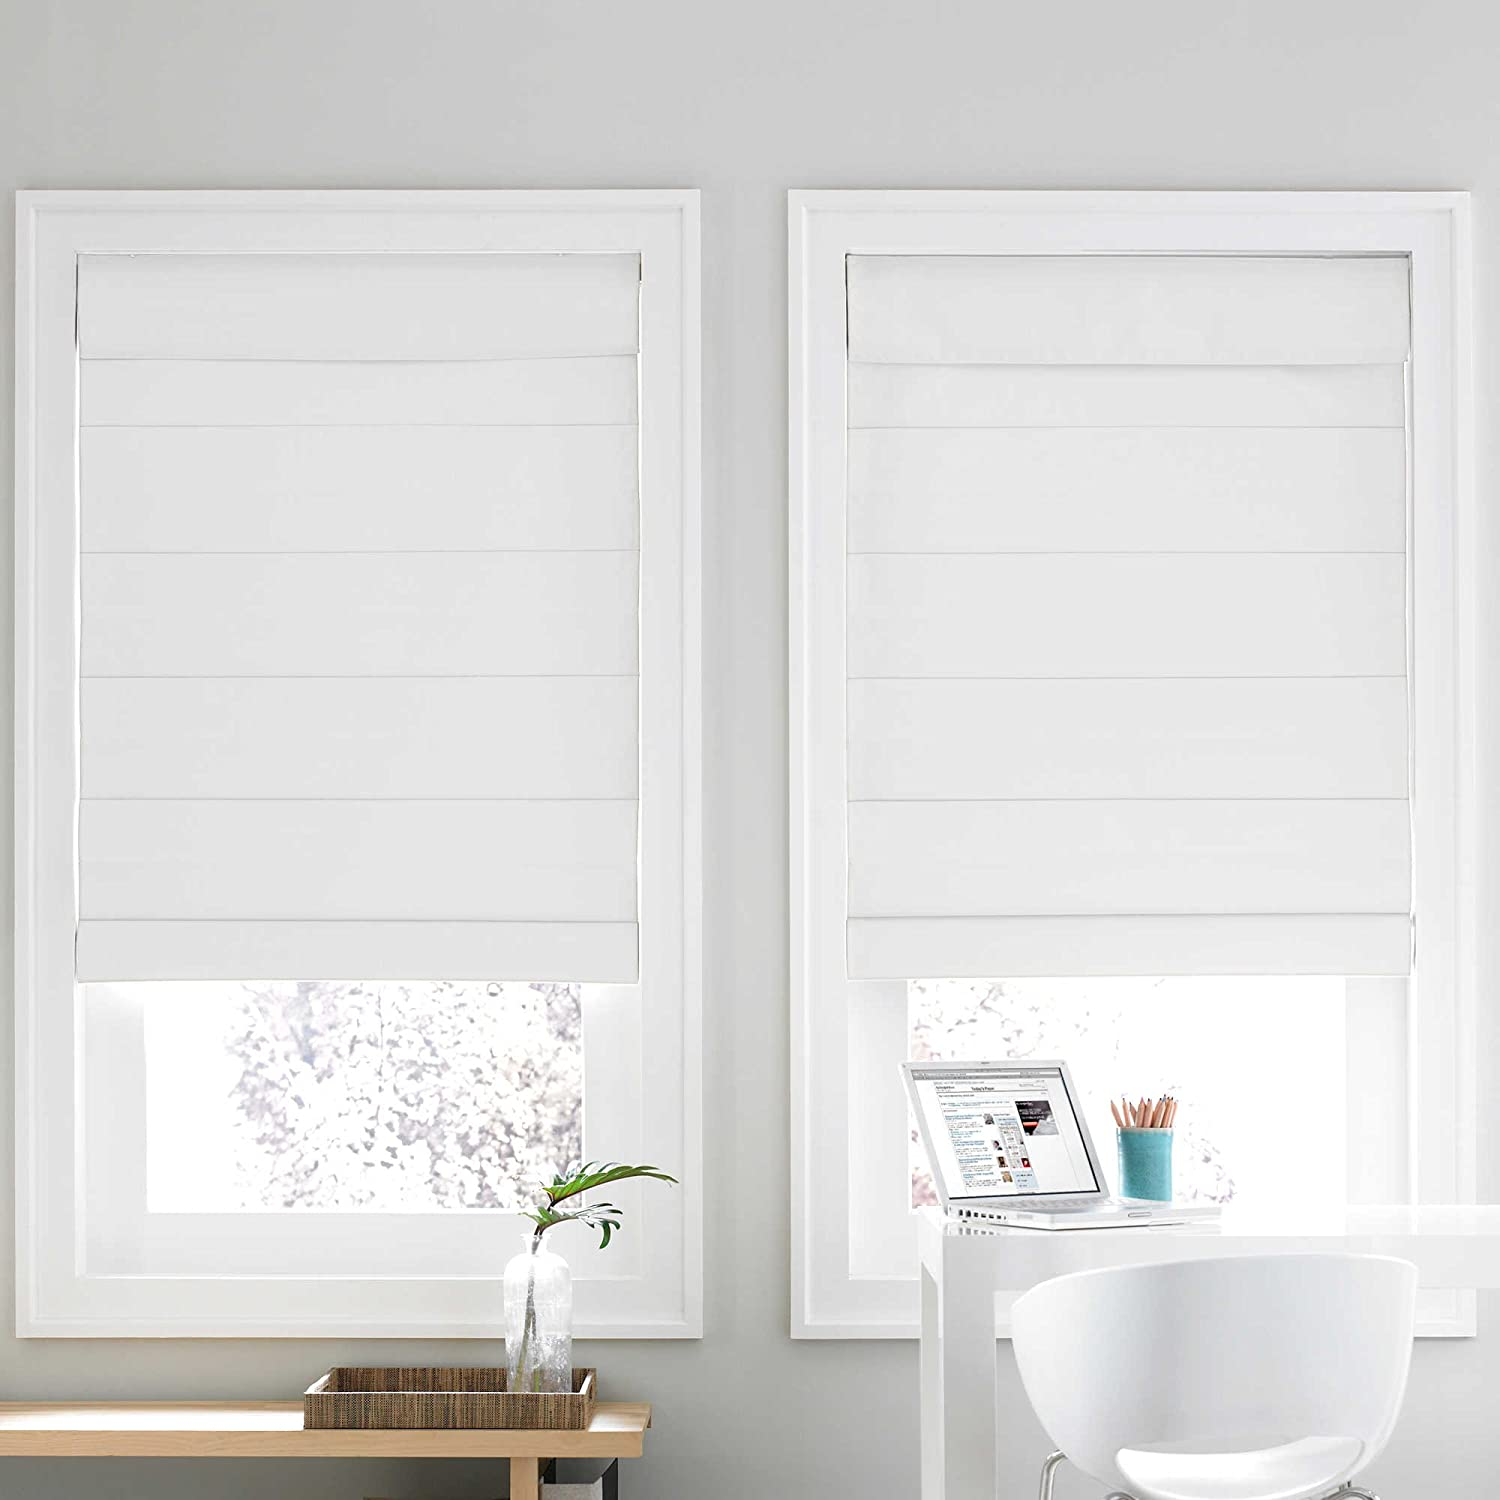 Snow white thermal fabric roman shades free shipping on orders over - Amazon Com Real Simple Cordless Roman Cellular 23 X 72 Shade White Home Kitchen